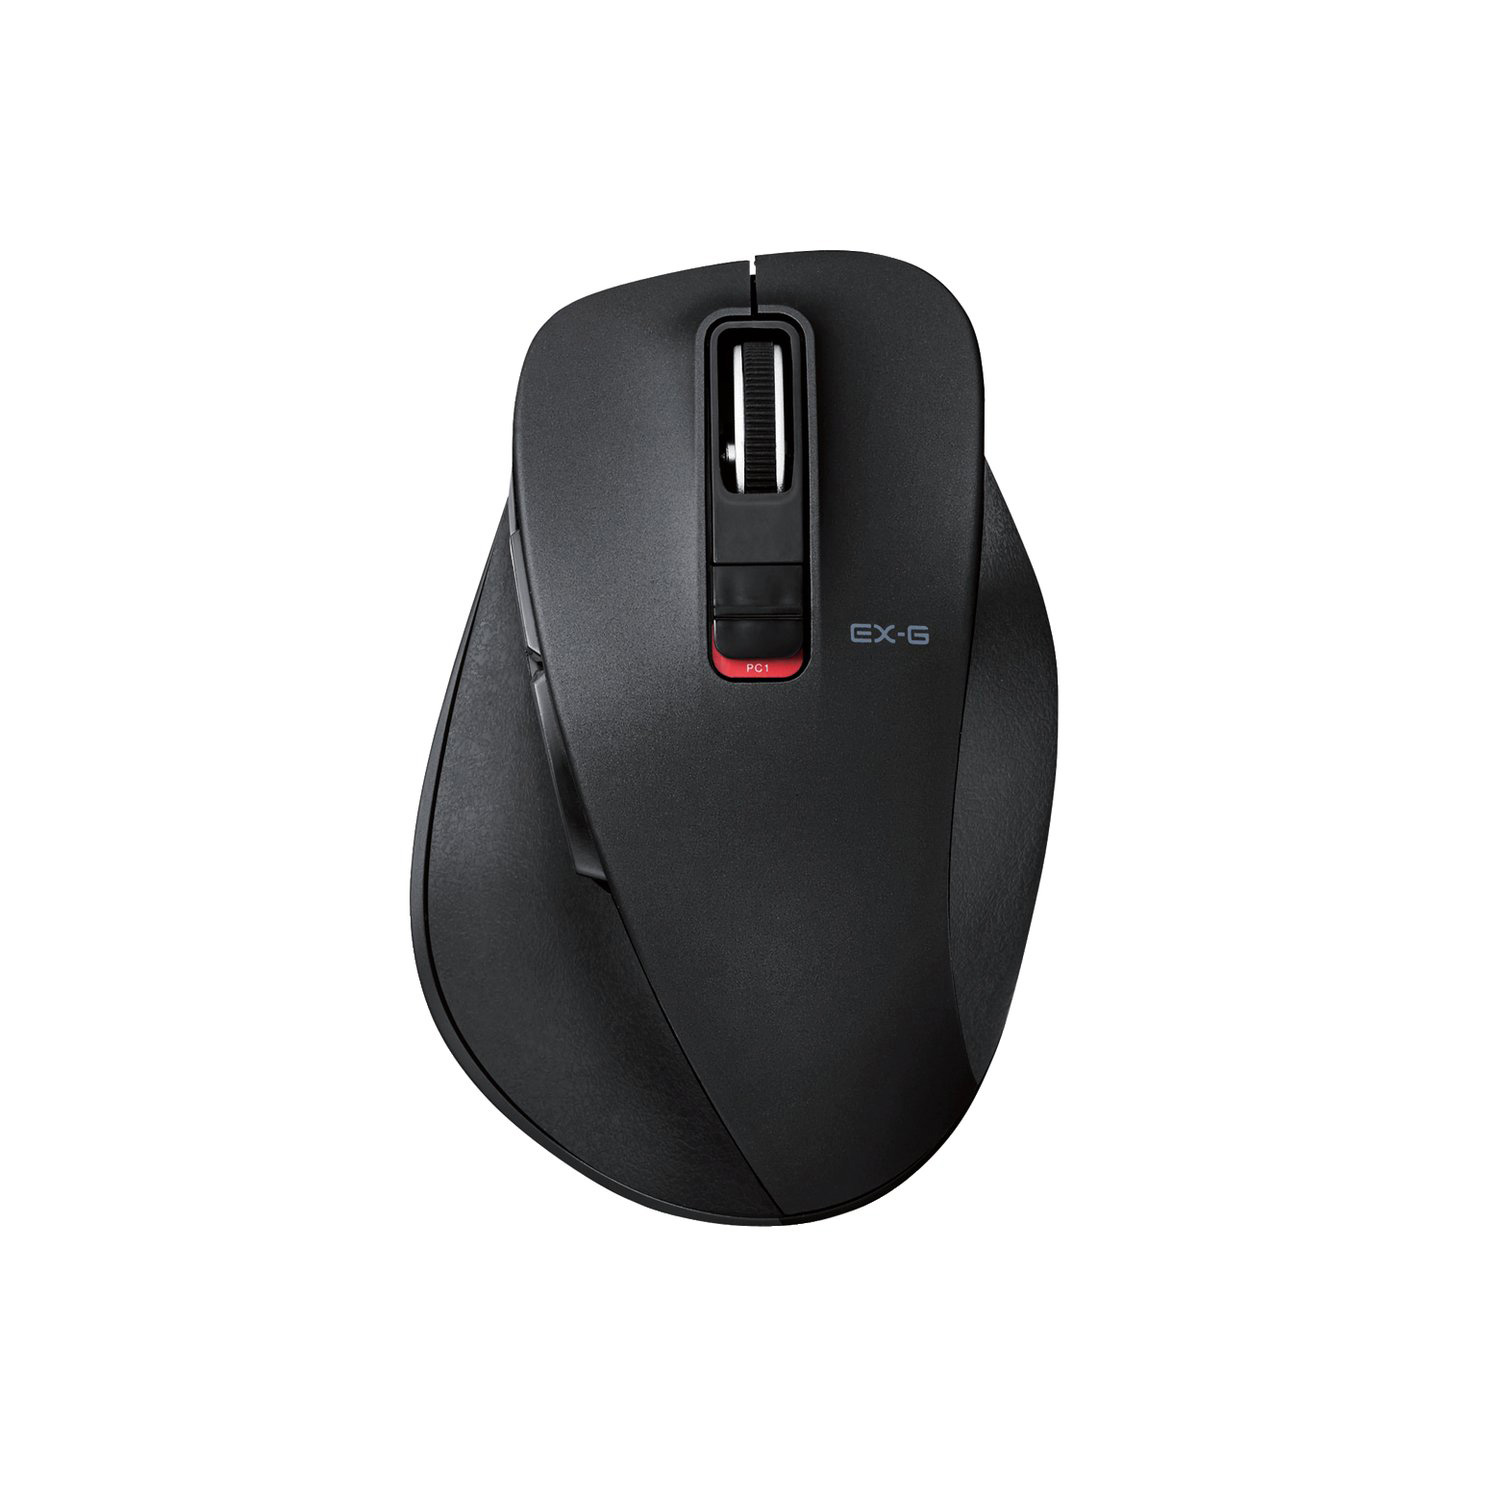 2017 NEW M-XGM10BB bluetooth mouse ergonomic wireless mouse for computer office android IOS WINDOWS microsoft office 365 personal для windows macos и ios box